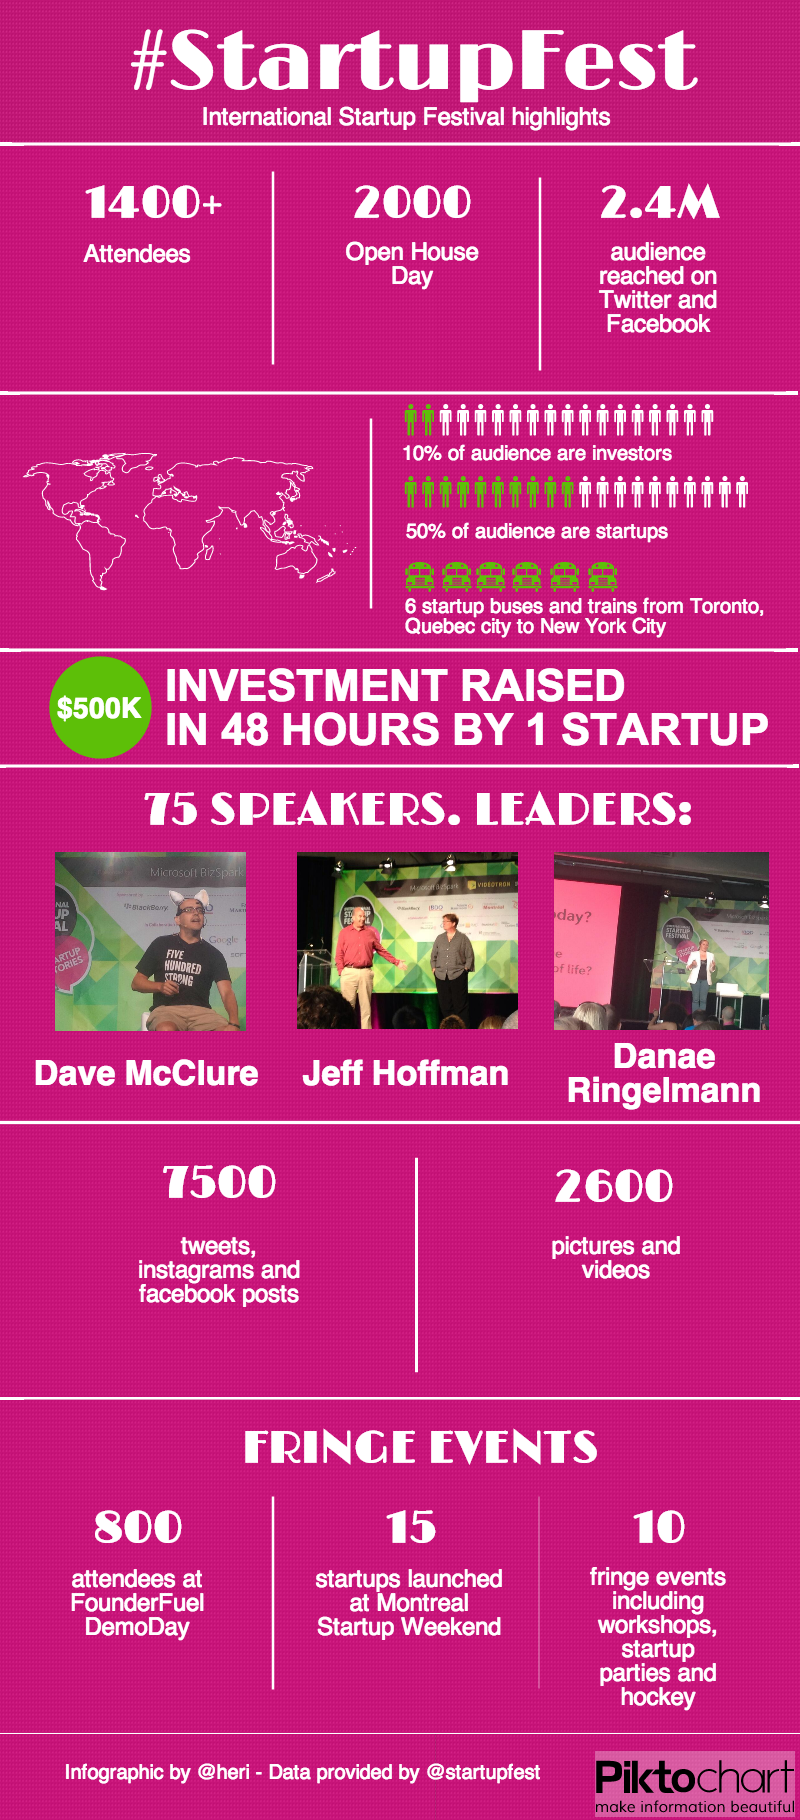 International Startup Festival 2013 infographic: successes, numbers, reach and leaders